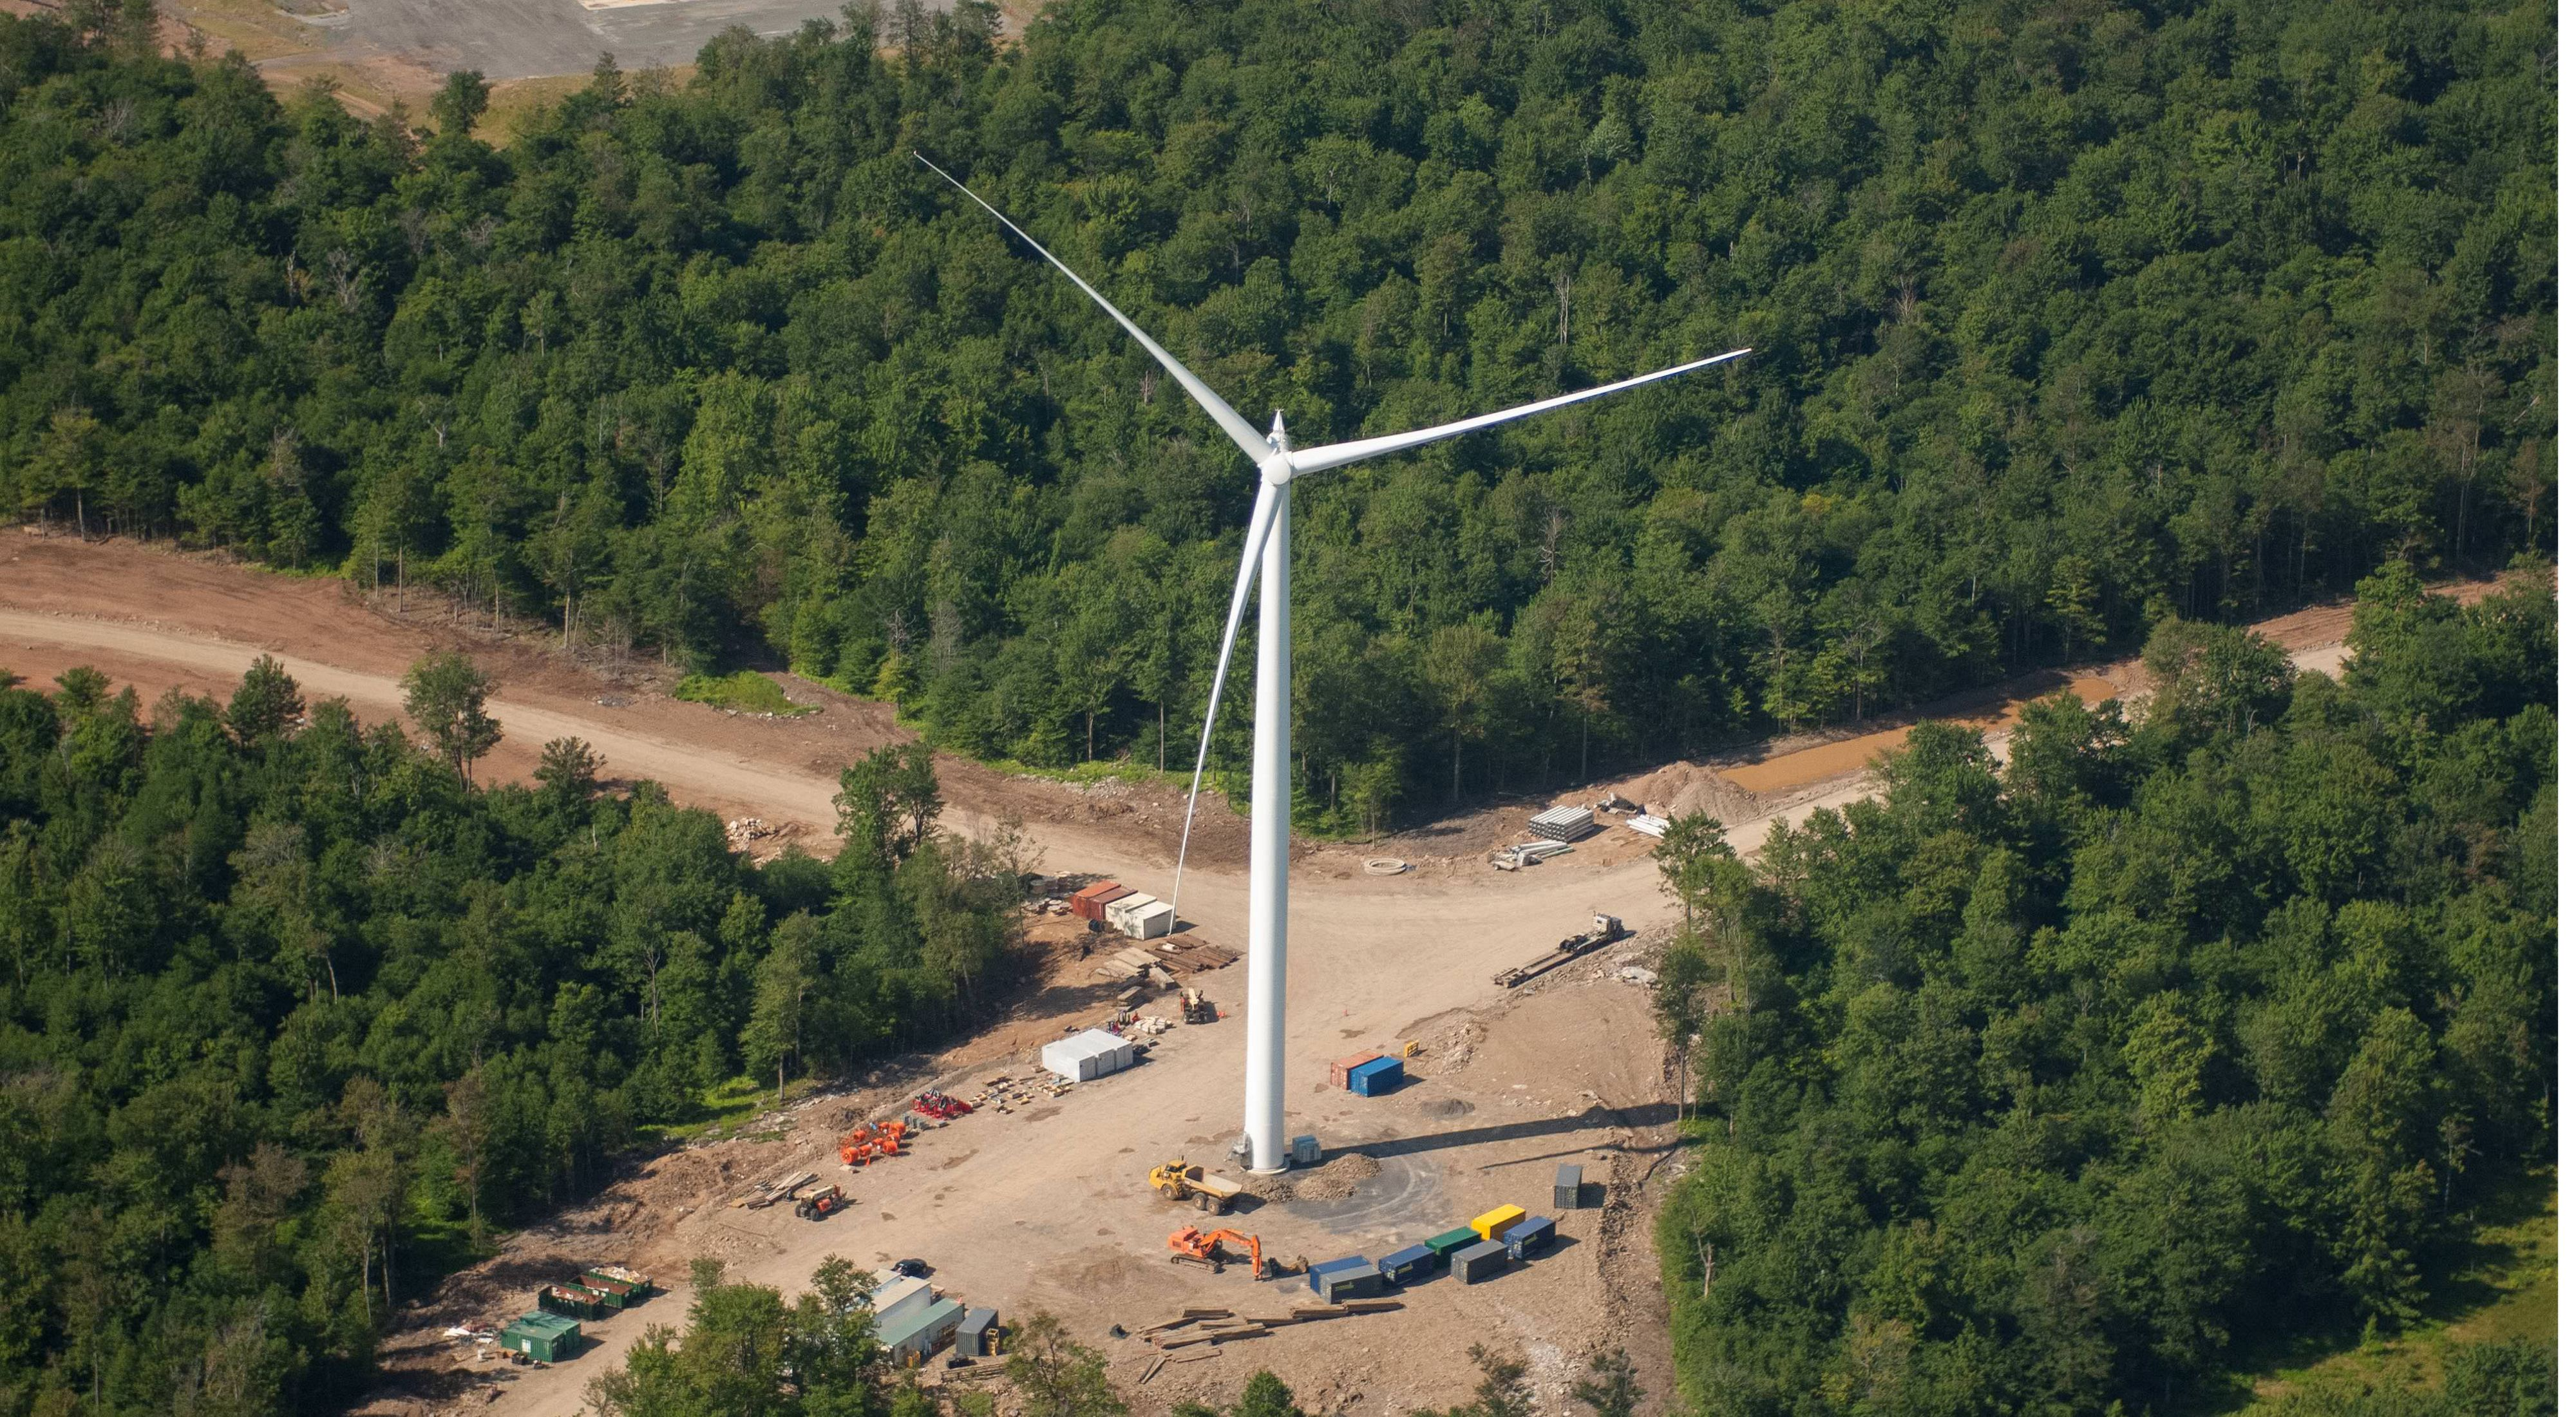 A new wind farm that was under construction along a ridge northeast of Williamsport, Pennsylvania